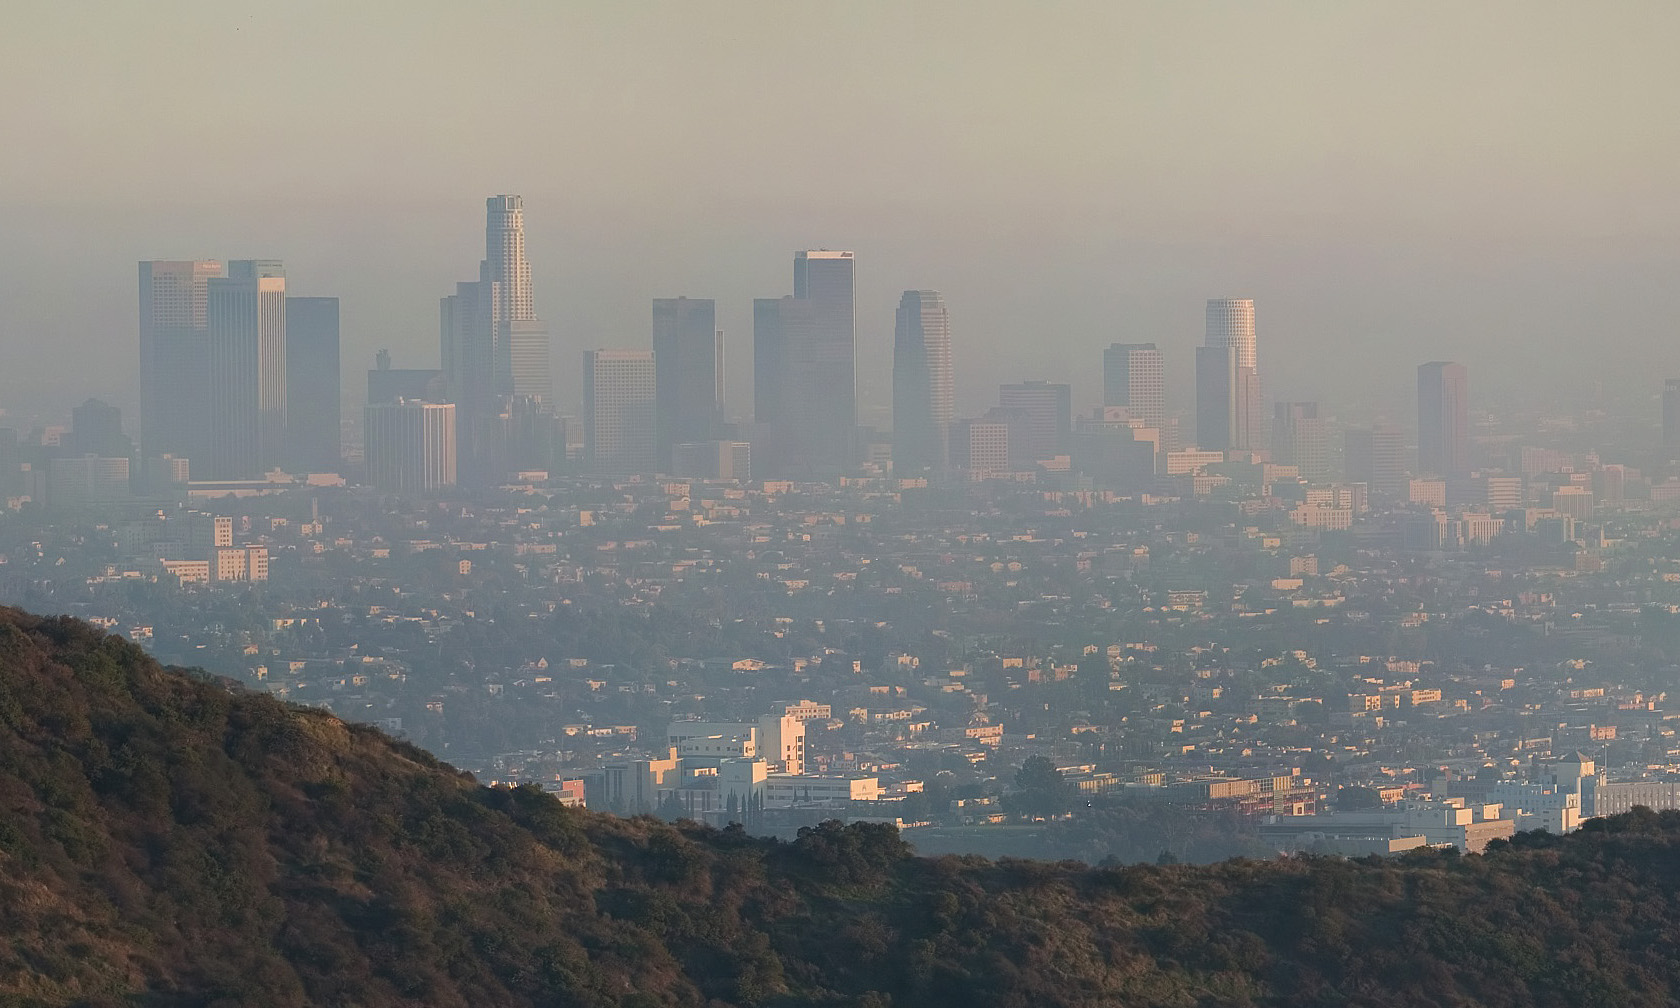 A shot of Los Angeles through thick smog